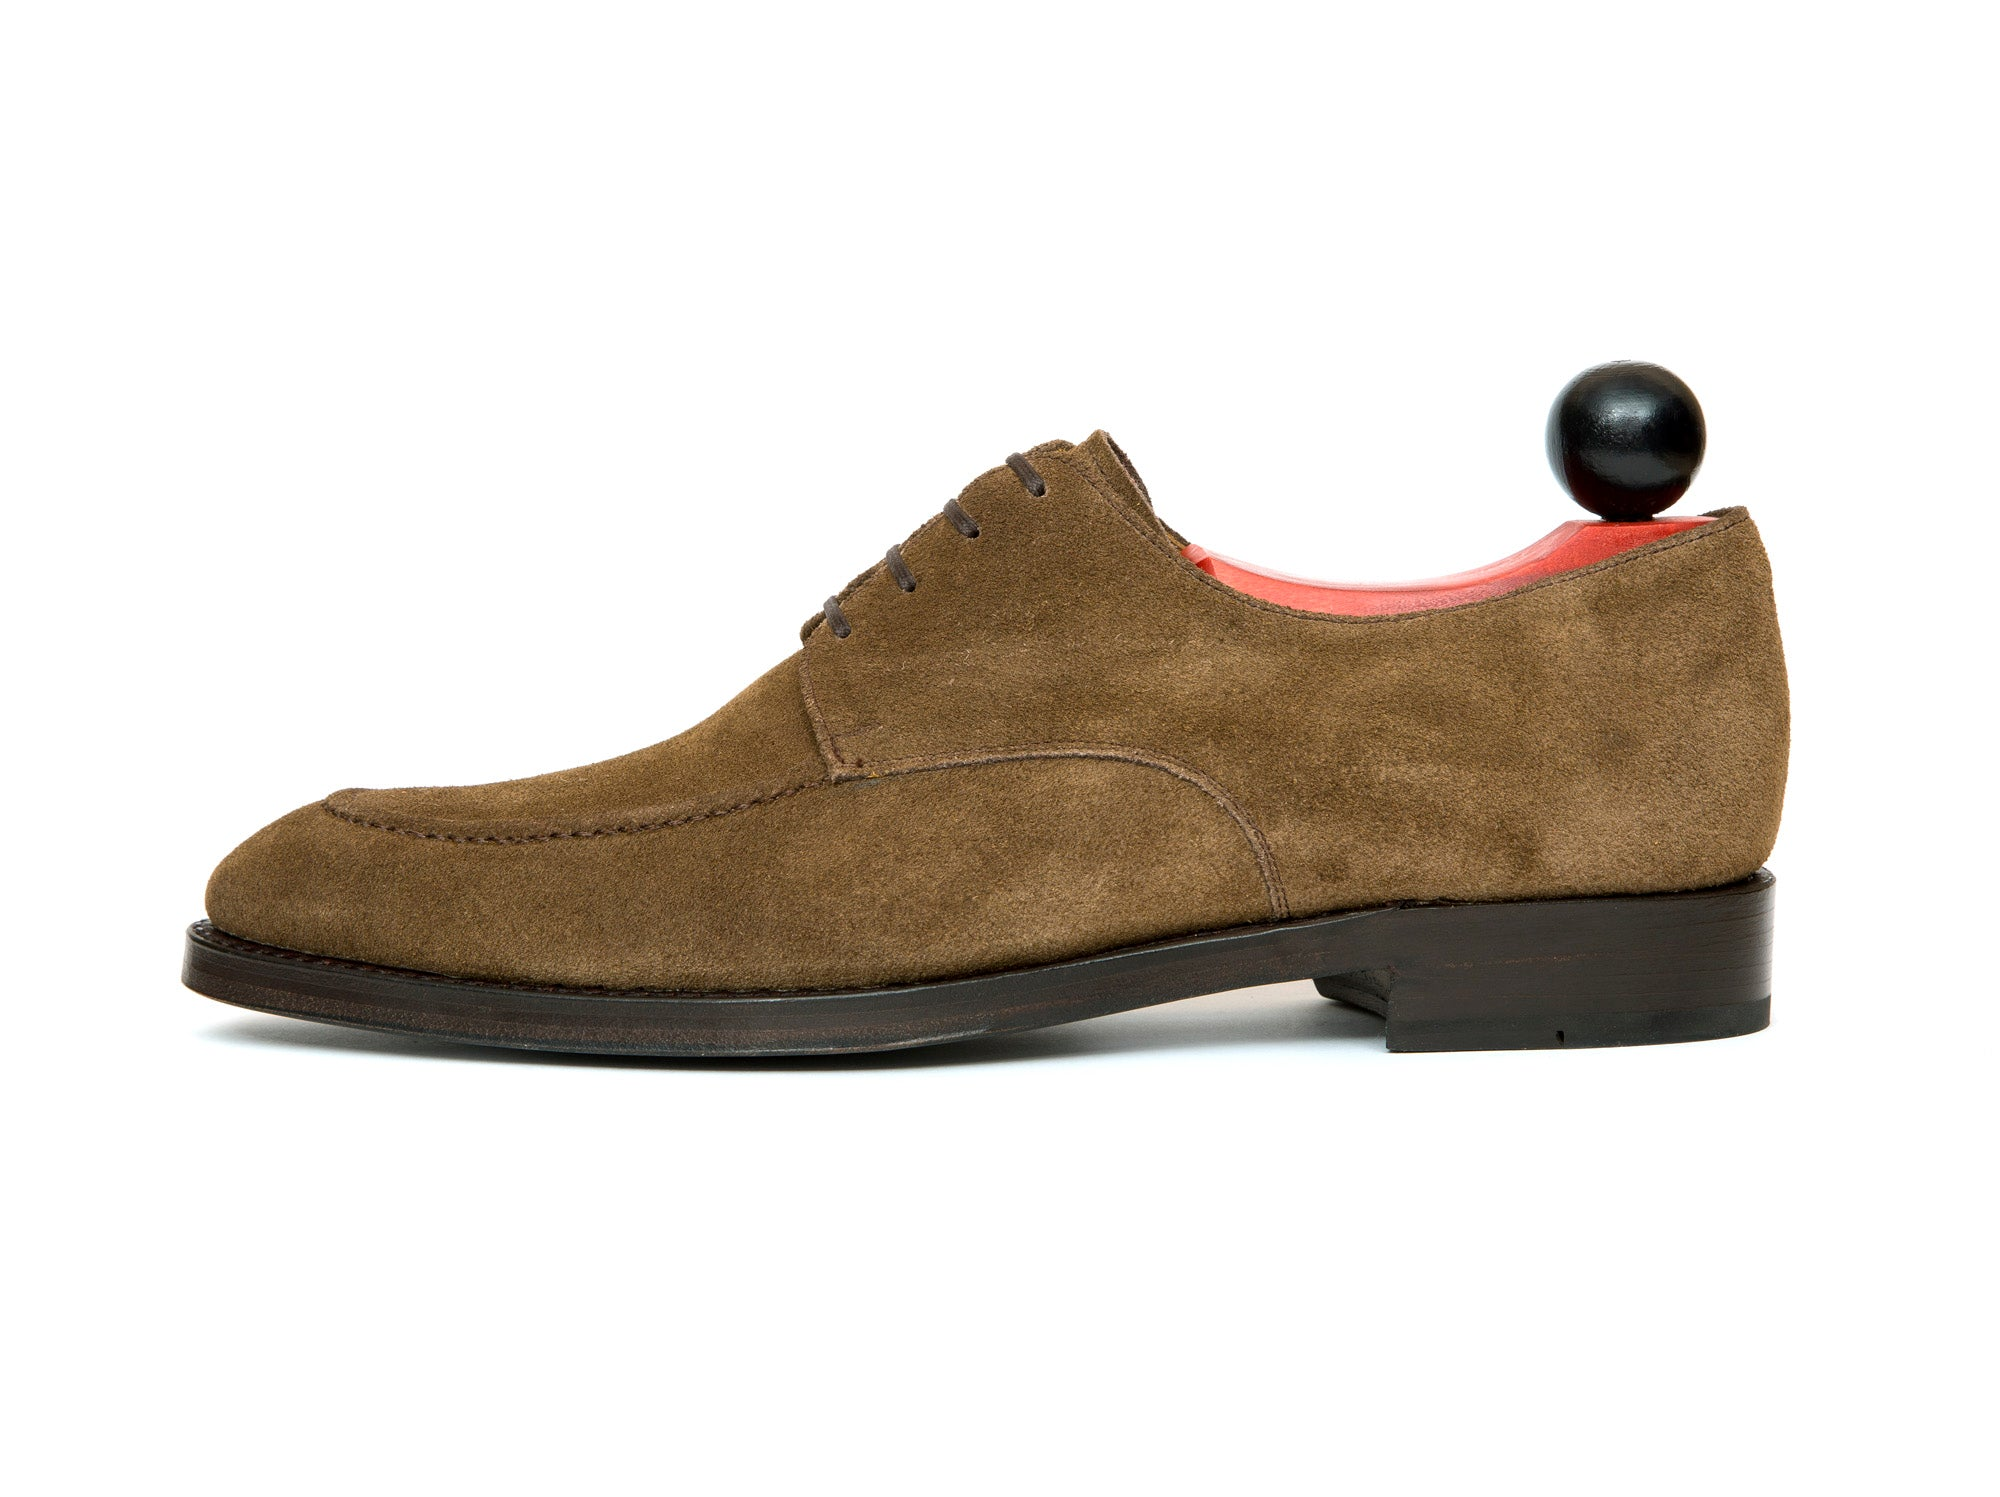 Lynwood - MTO - Taupe Suede - SEA Last - Double Leather Sole